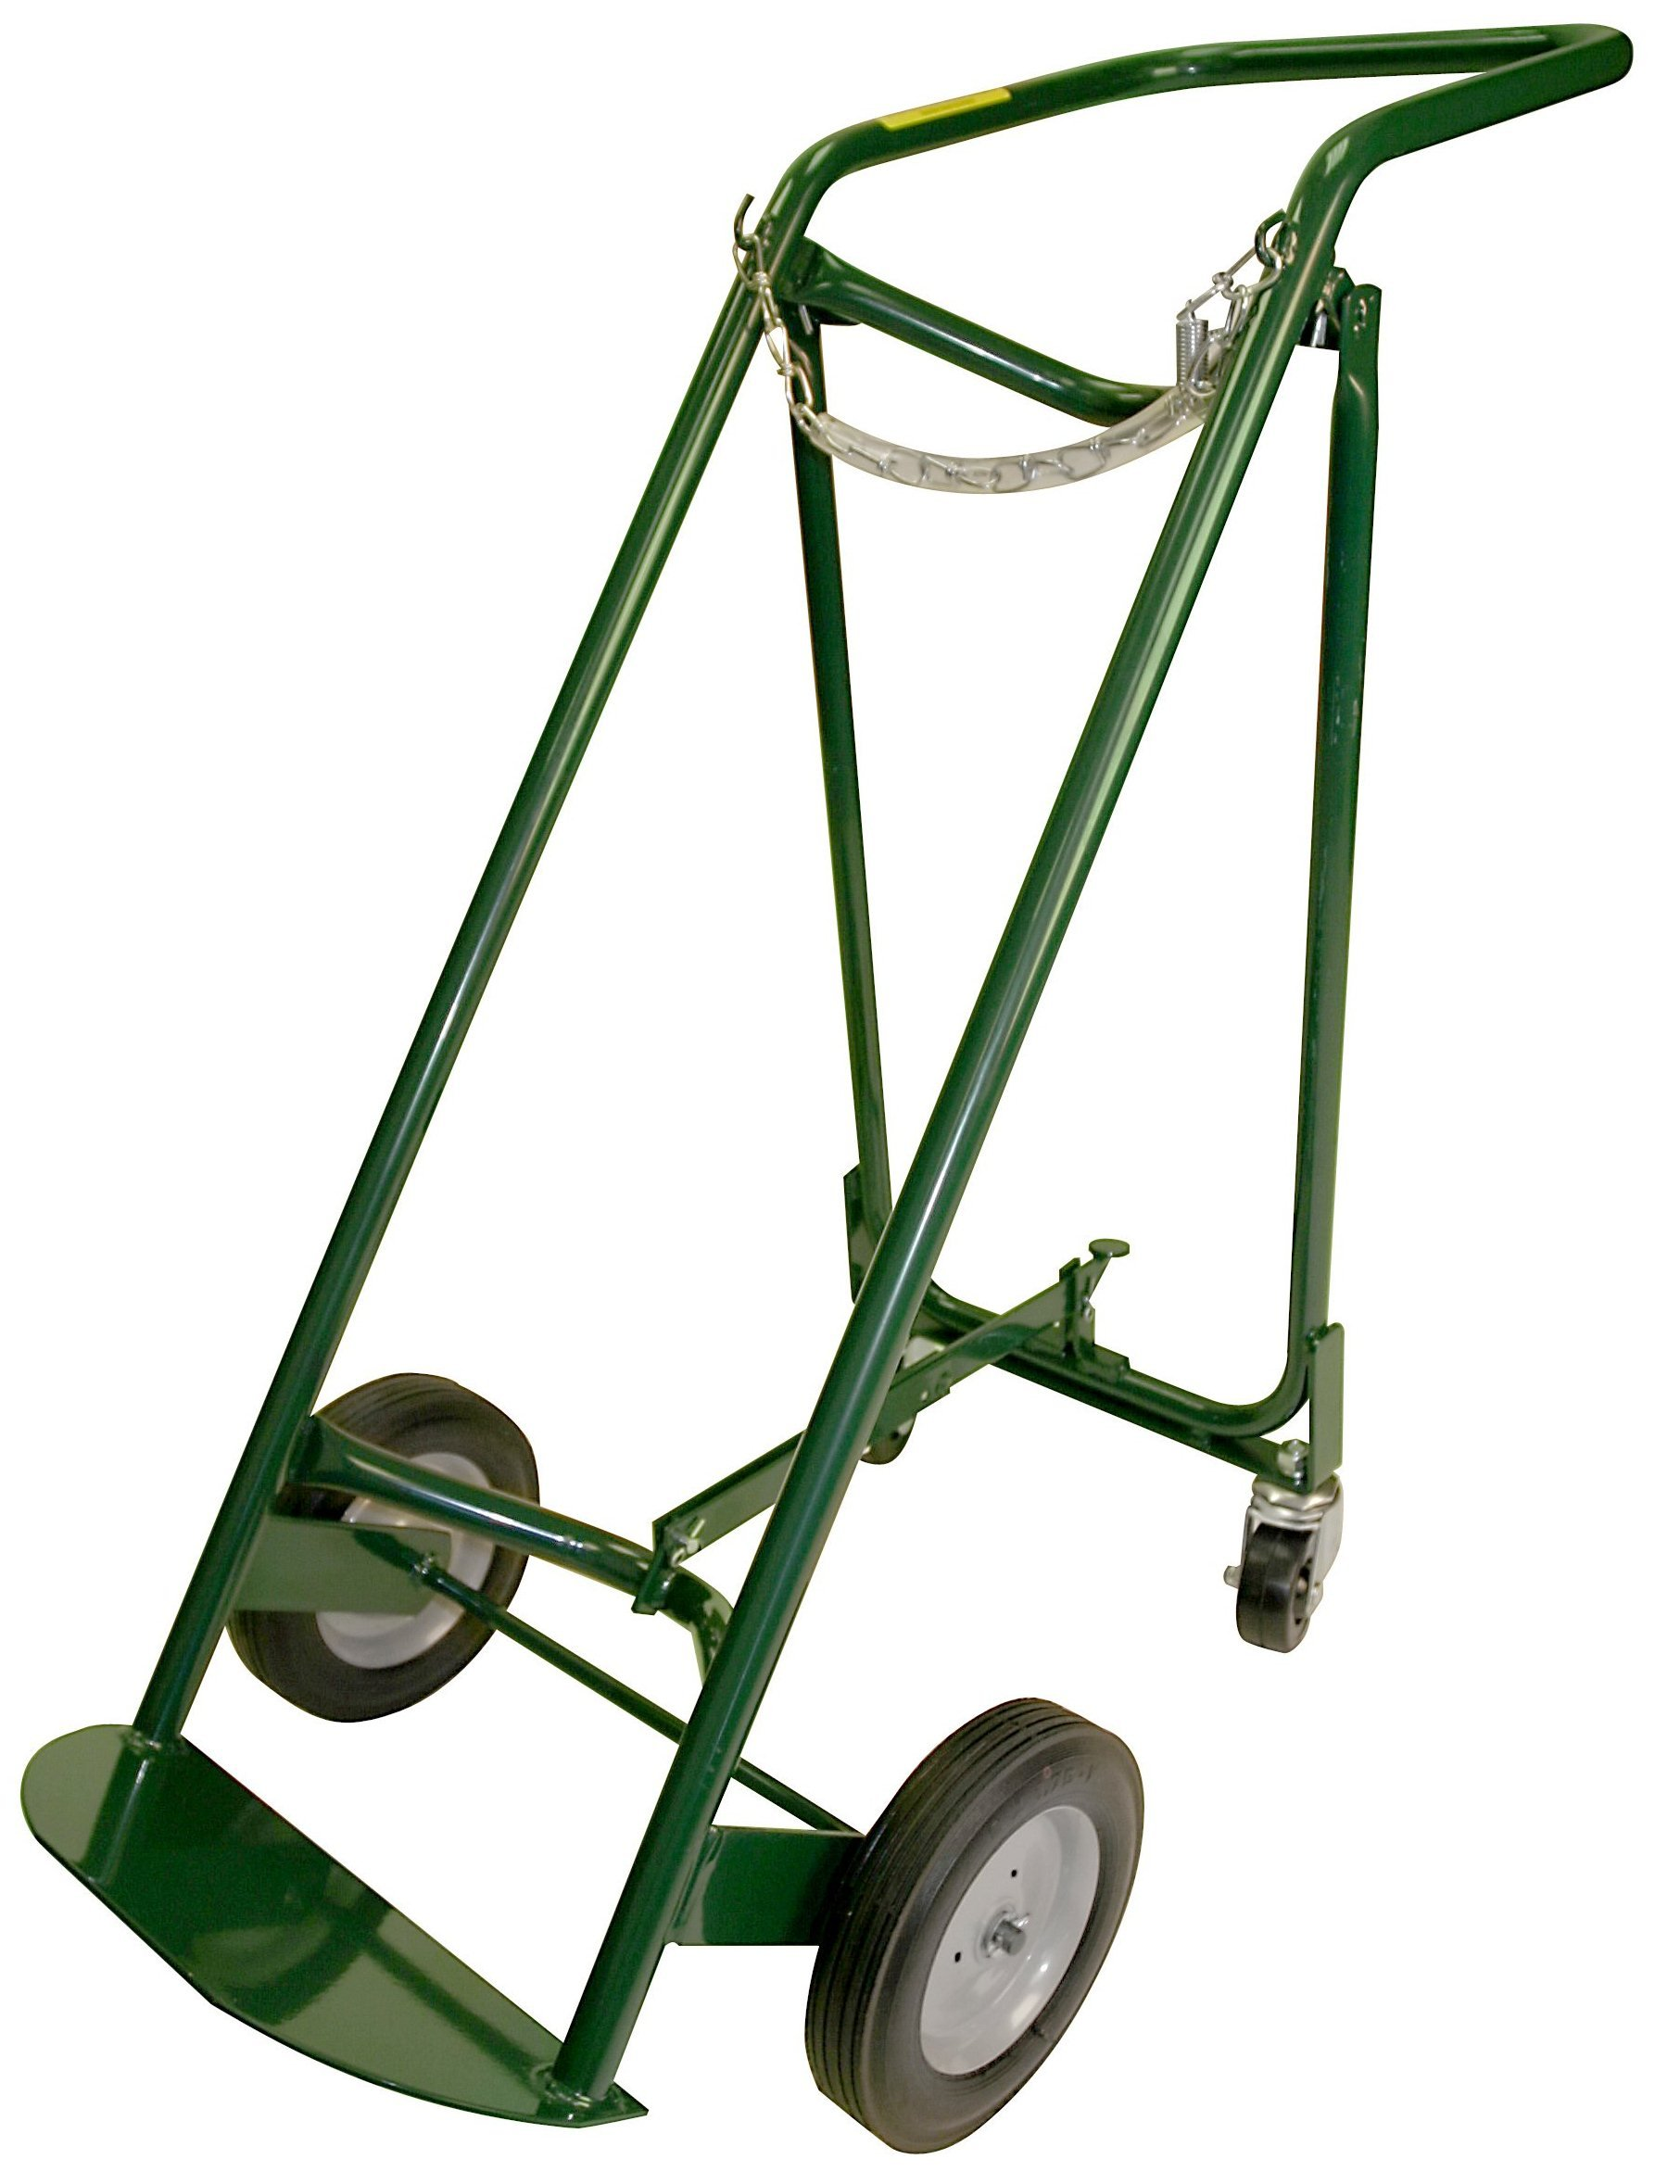 Harper Trucks MG-470B40 46-Inch High by 20-Inch Wide Large Oxygen Cylinder Hand Truck with Two Rear Casters with 8-Inch Semi-Pneumatic Wheels